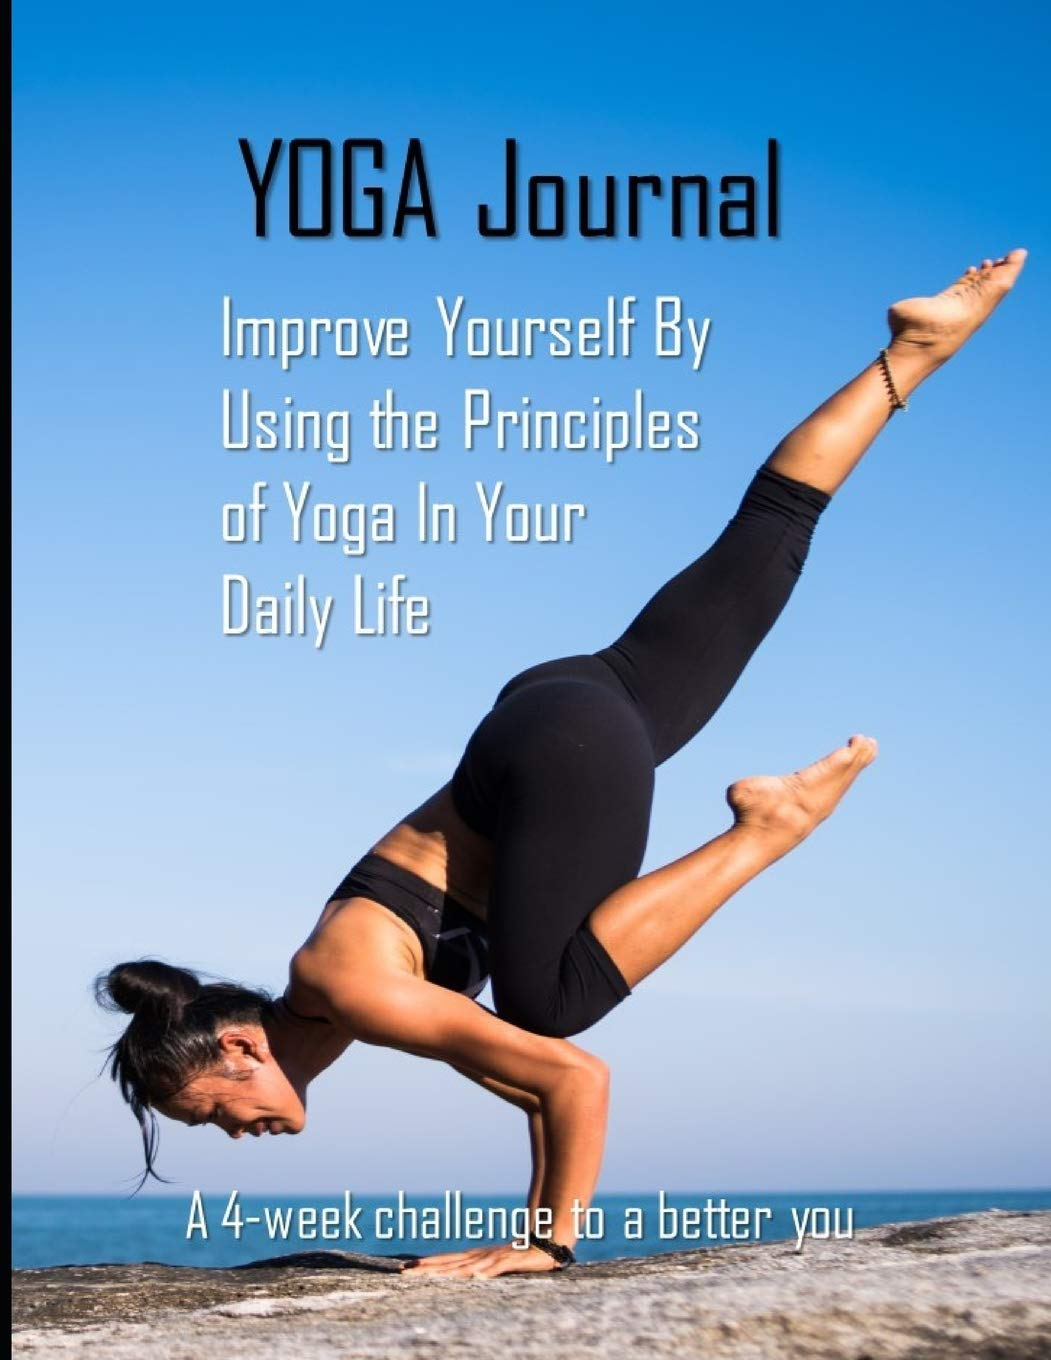 YOGA Journal: Improve Yourself By Using the Principles of ...